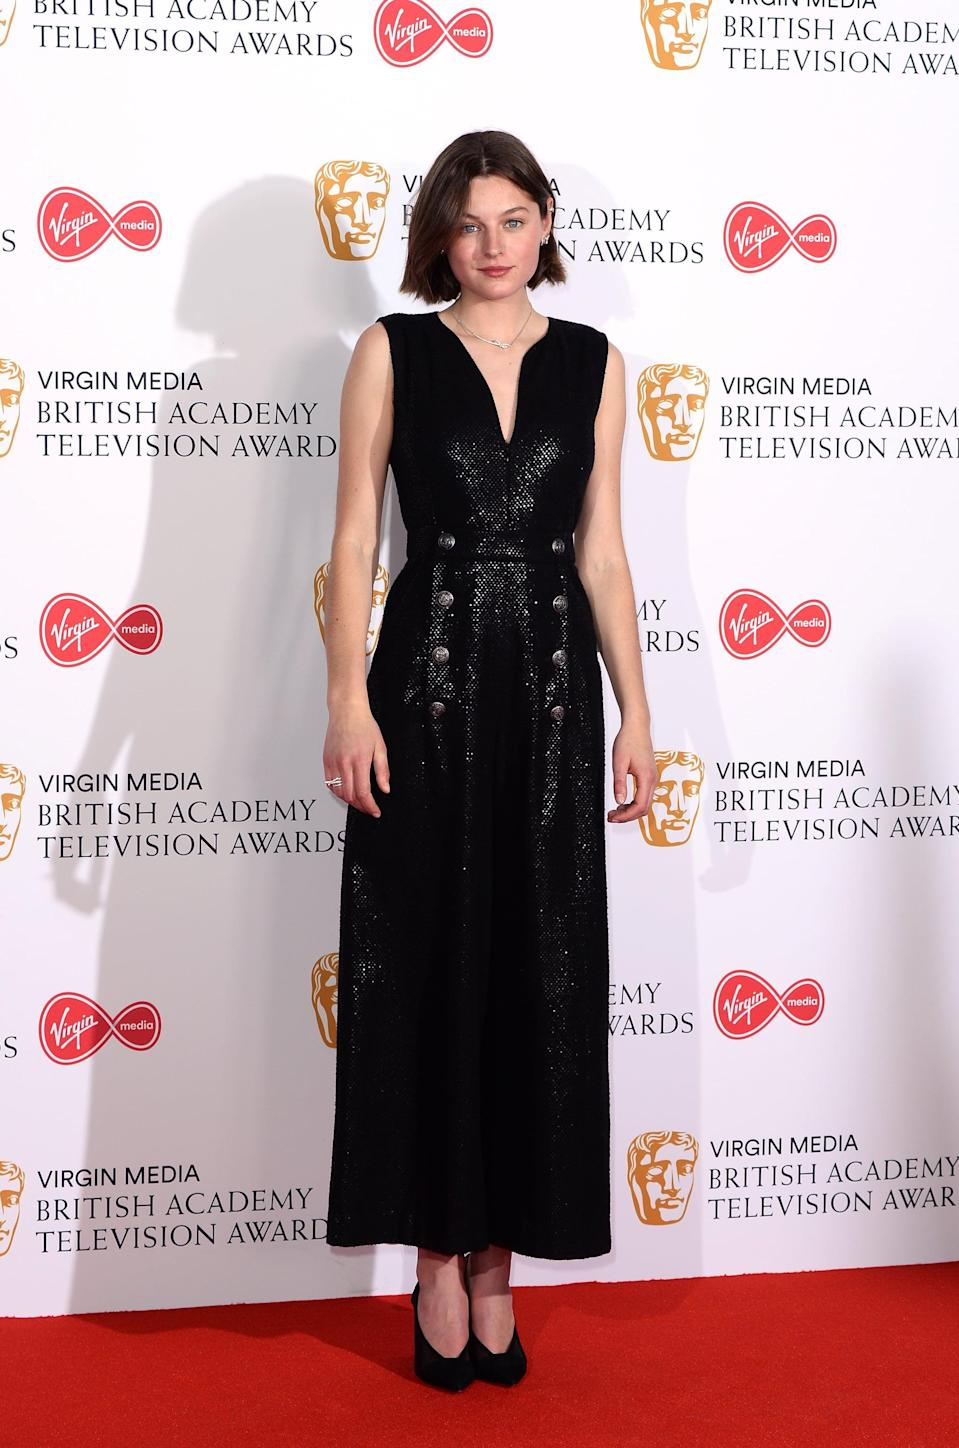 <p>A full-length black outfit seems to be Emma Corrin's look of choice at red carpet events. The actor wore a shimmering black jumpsuit to the 2019 BAFTA Television Awards. </p>